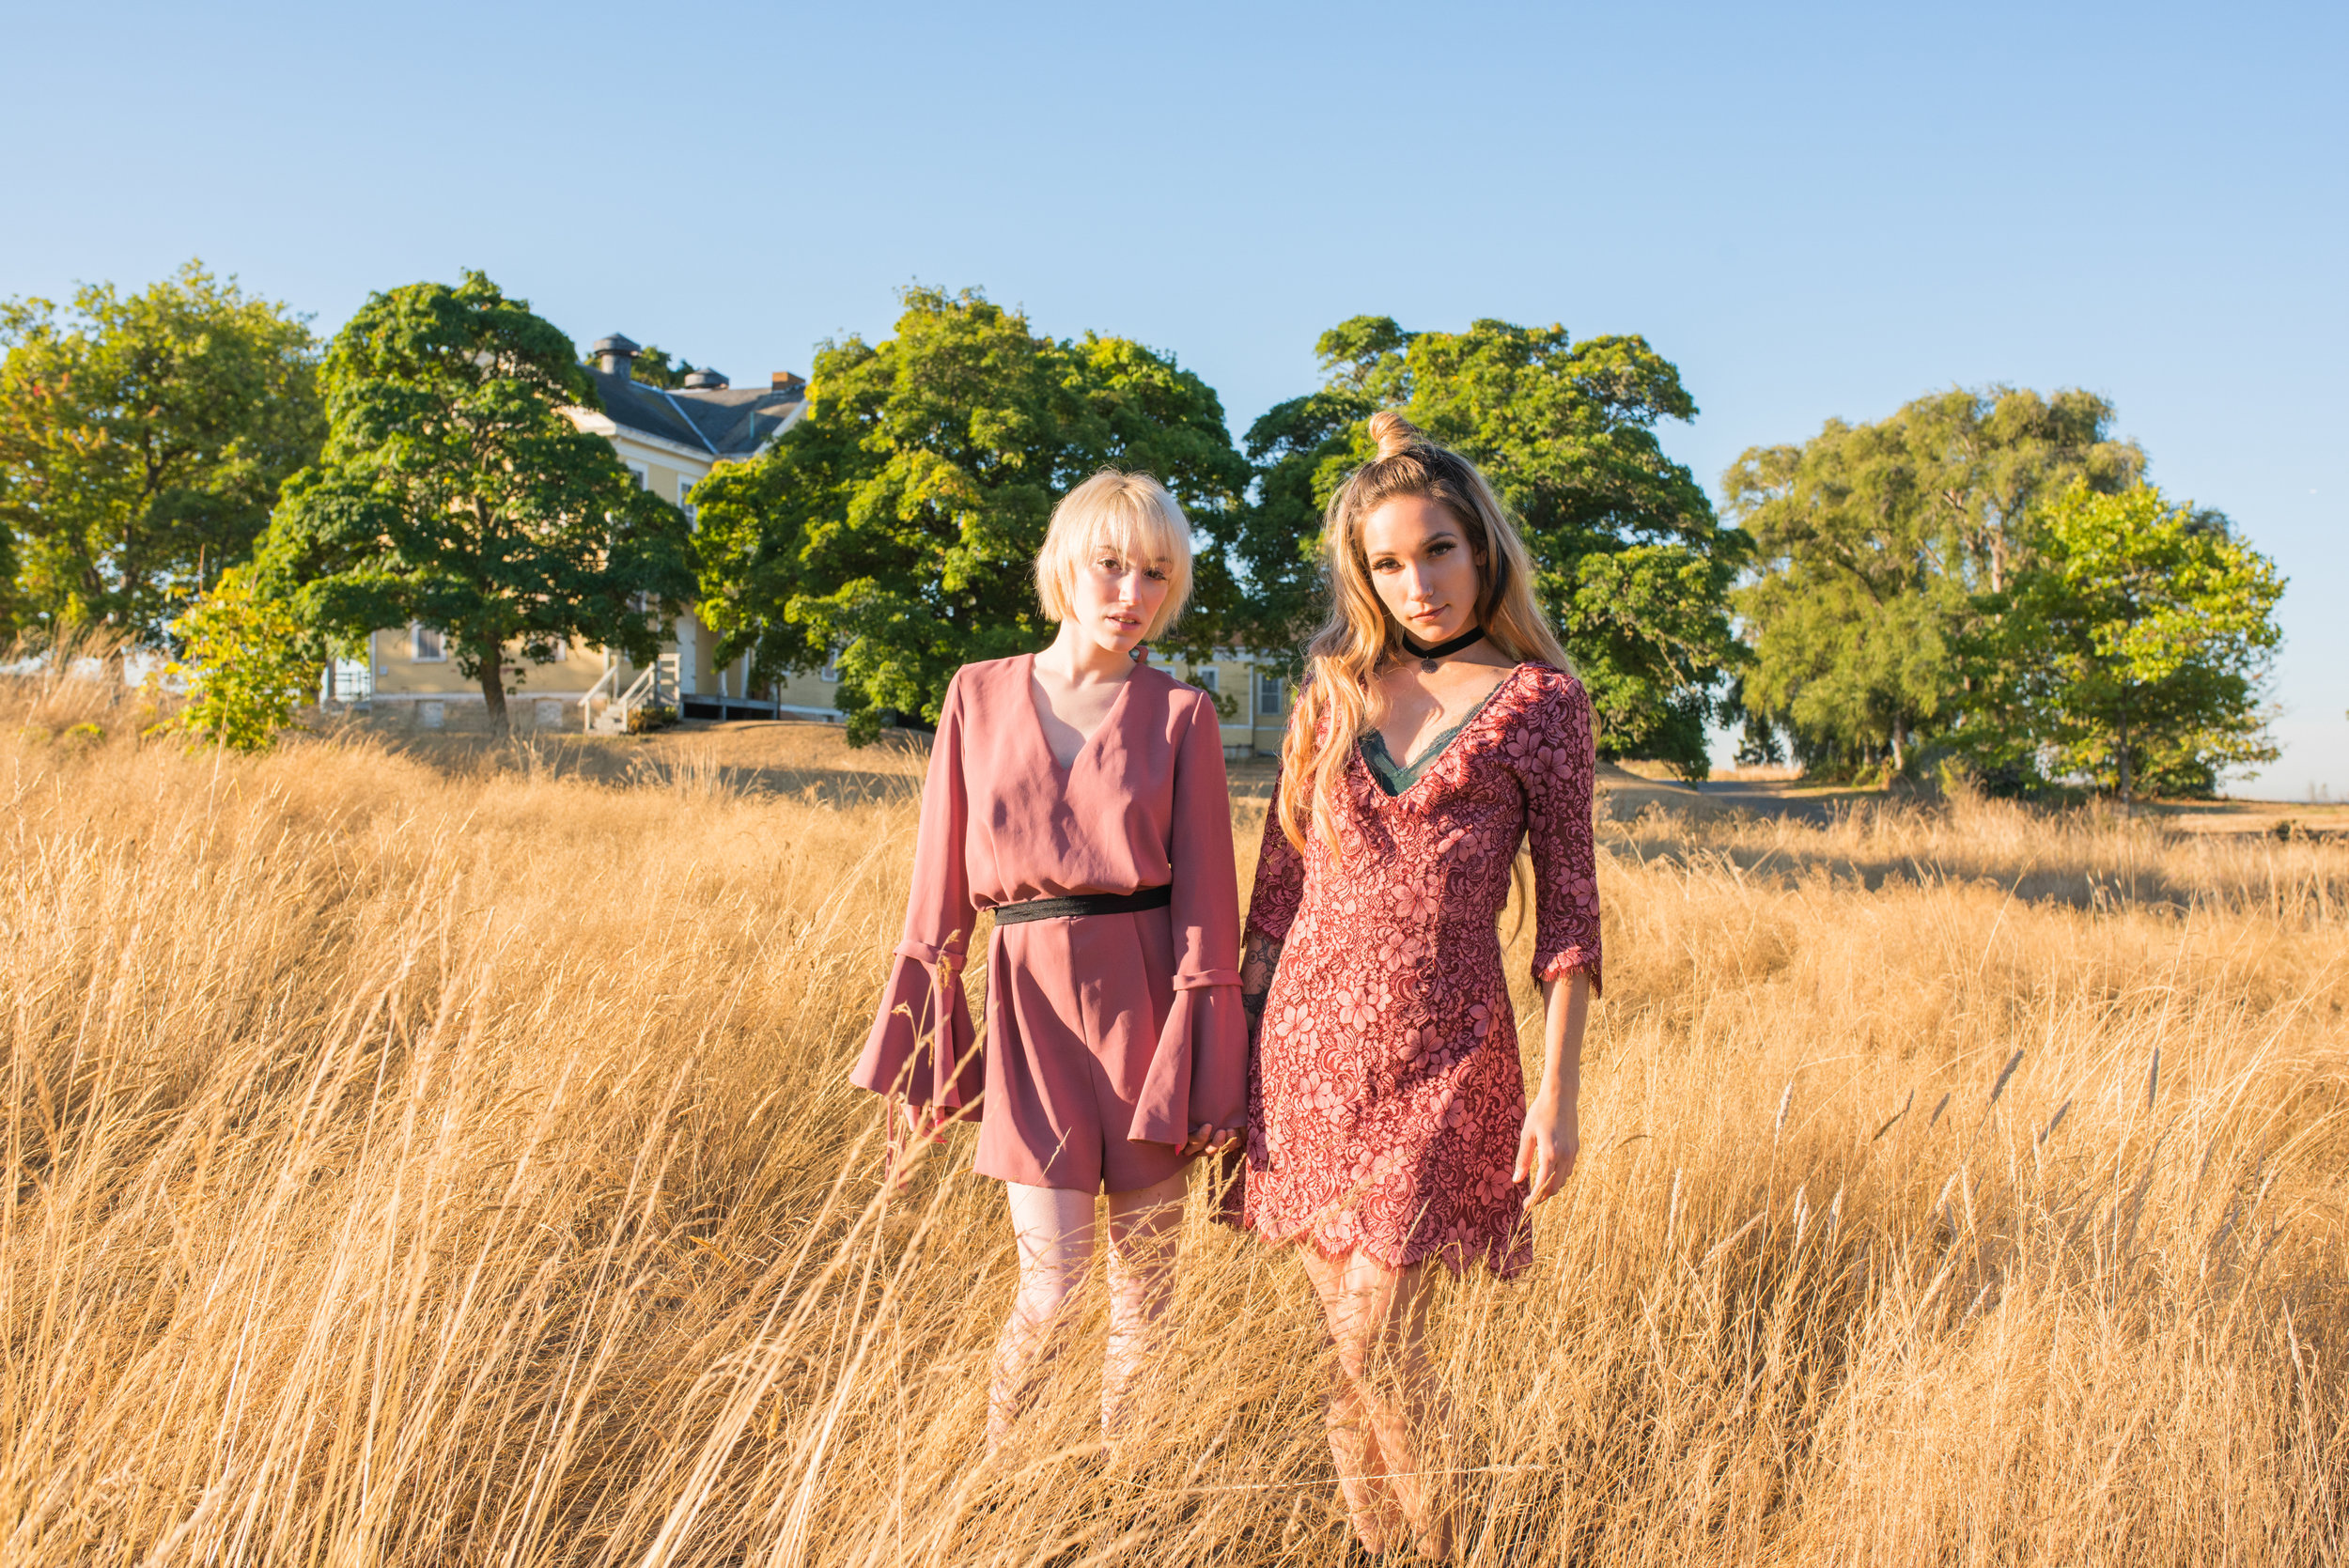 Annabelle Sussman and Jamie Holien - Itzel Luccas Photography - Discovery Park - Indie Fashion - Boho Fashion - For Love and Lemons and Top Shop - 52 - Small File_.JPG